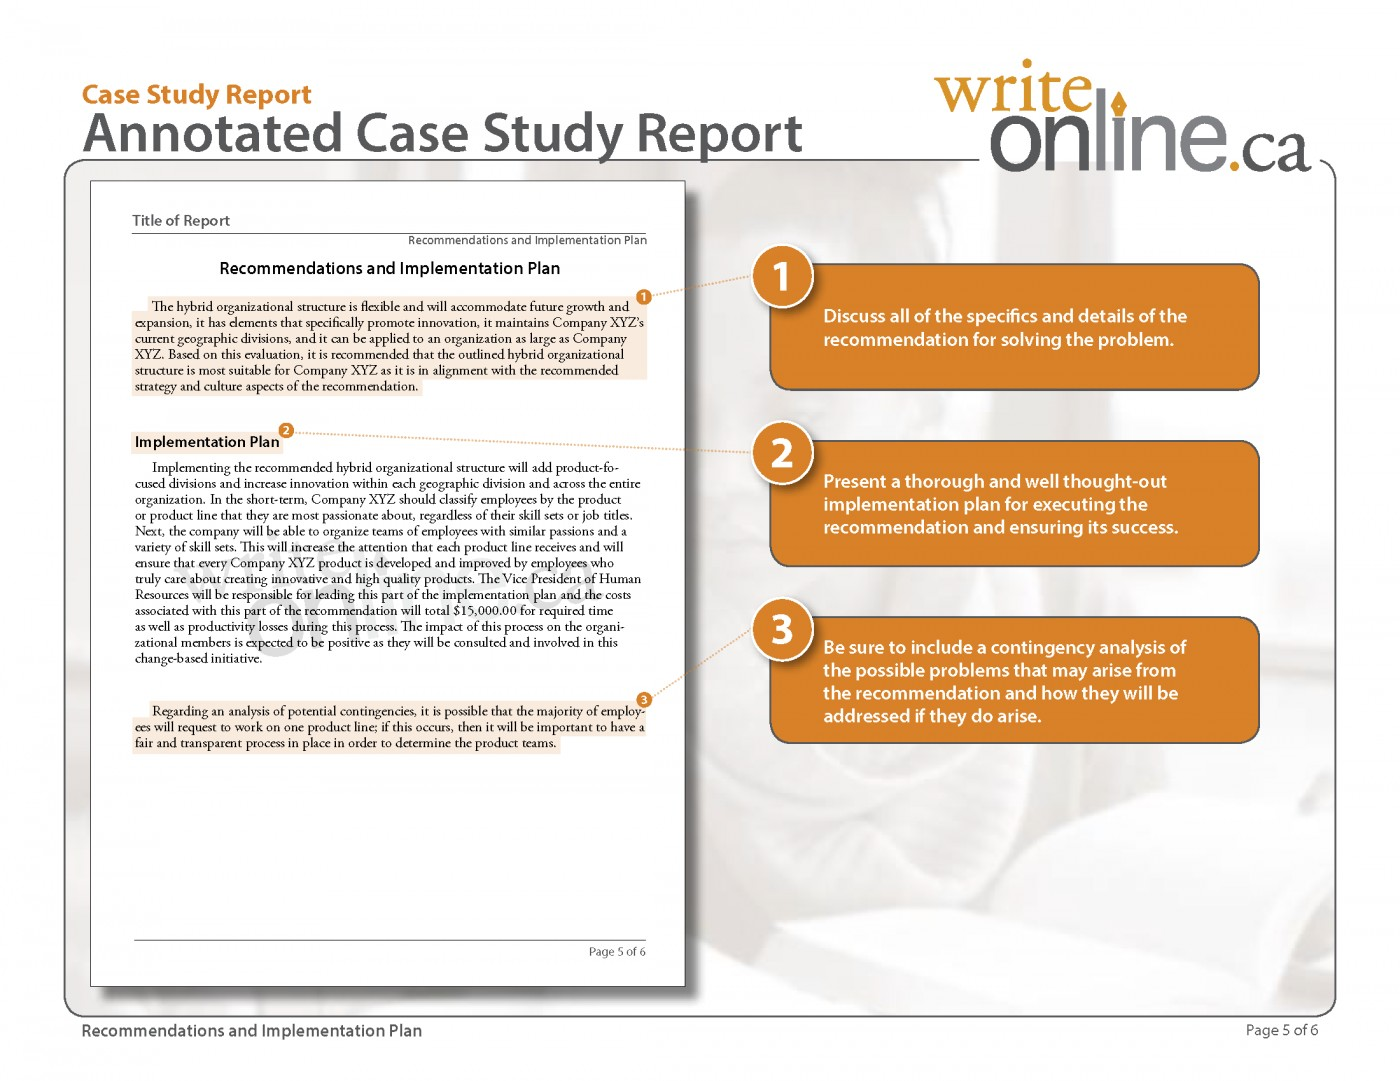 013 Casestudy Annotatedfull Page 5 Research Paper Components Of Fascinating A Apa In Format 1400